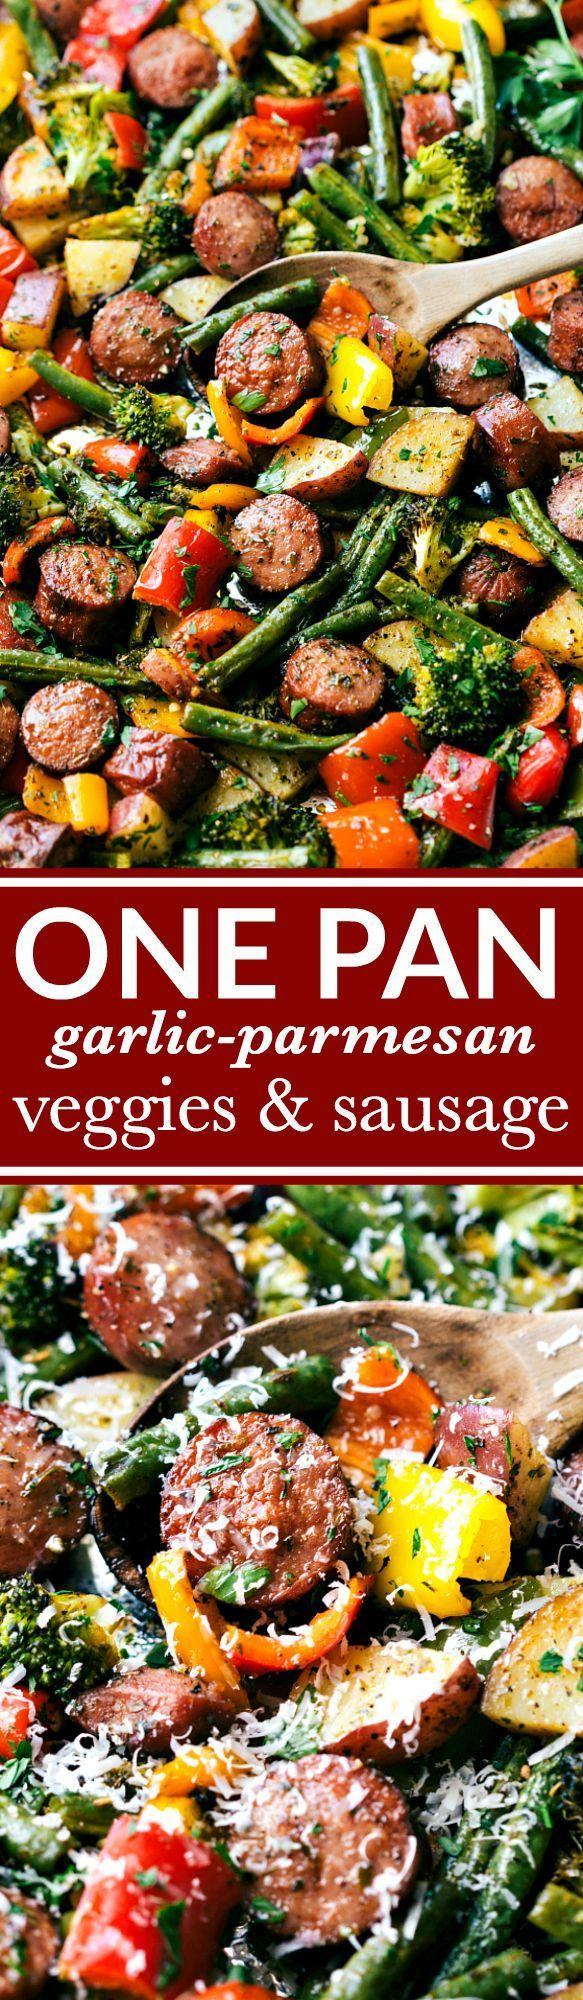 Healthy garlic parmesan roasted veggies with sausage and herbs all made and cooked on one pan. 10 minutes prep, easy clean-up! GREAT MEAL PREP IDEA. Recipe via http://chelseasmessyapron.com